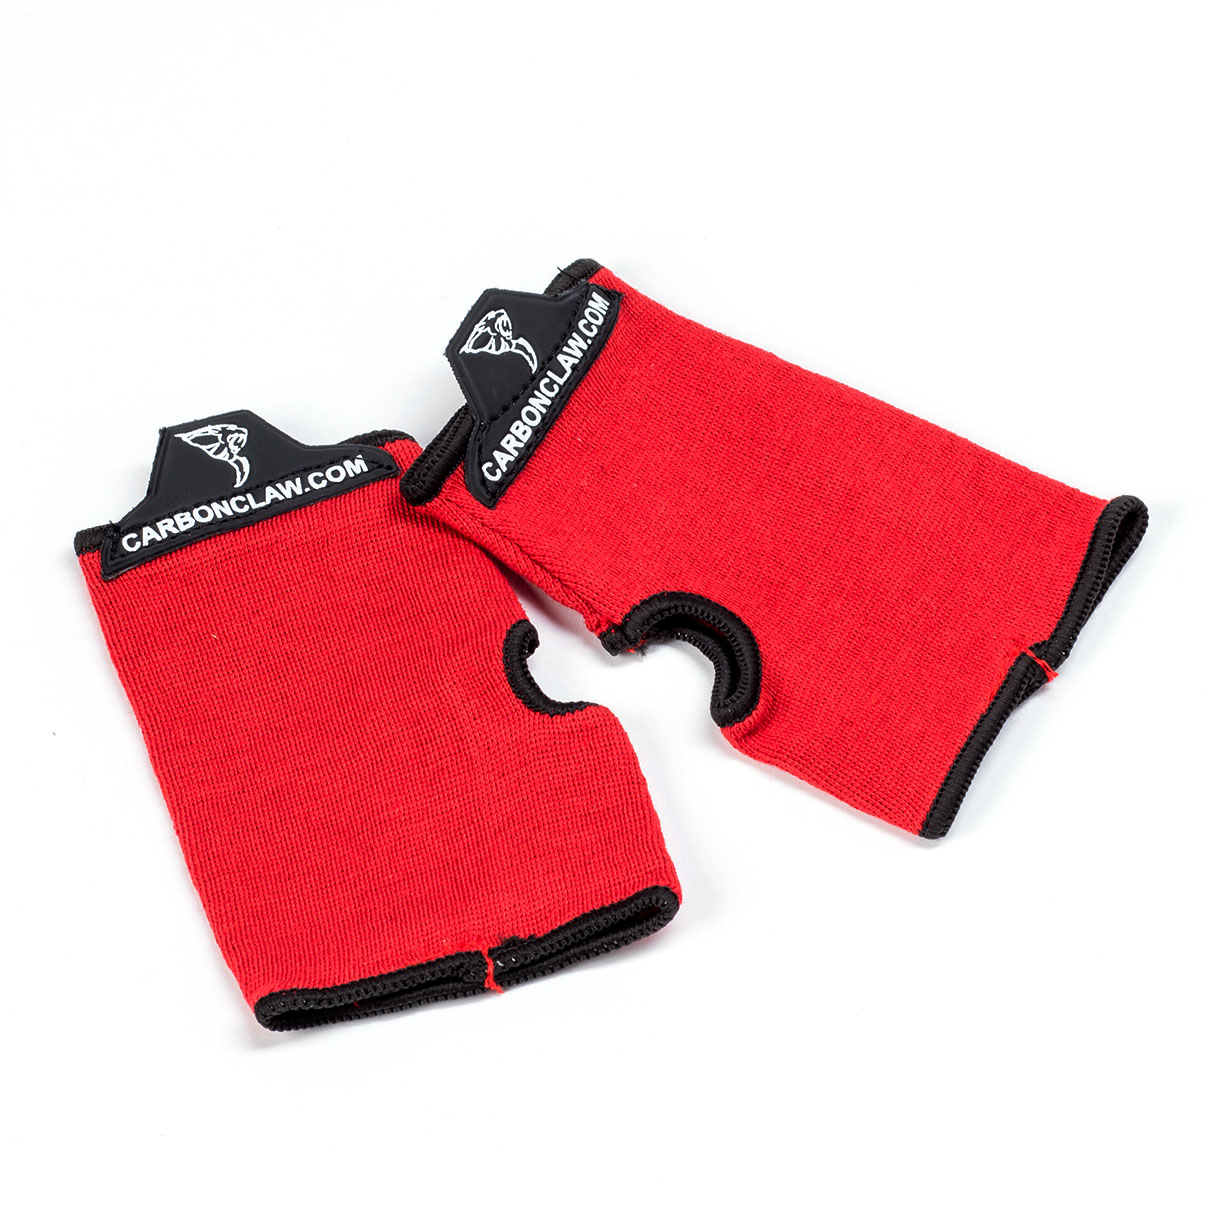 Carbon Claw AERO AX-5 Elasticated Inner Wash Mitts - M / L